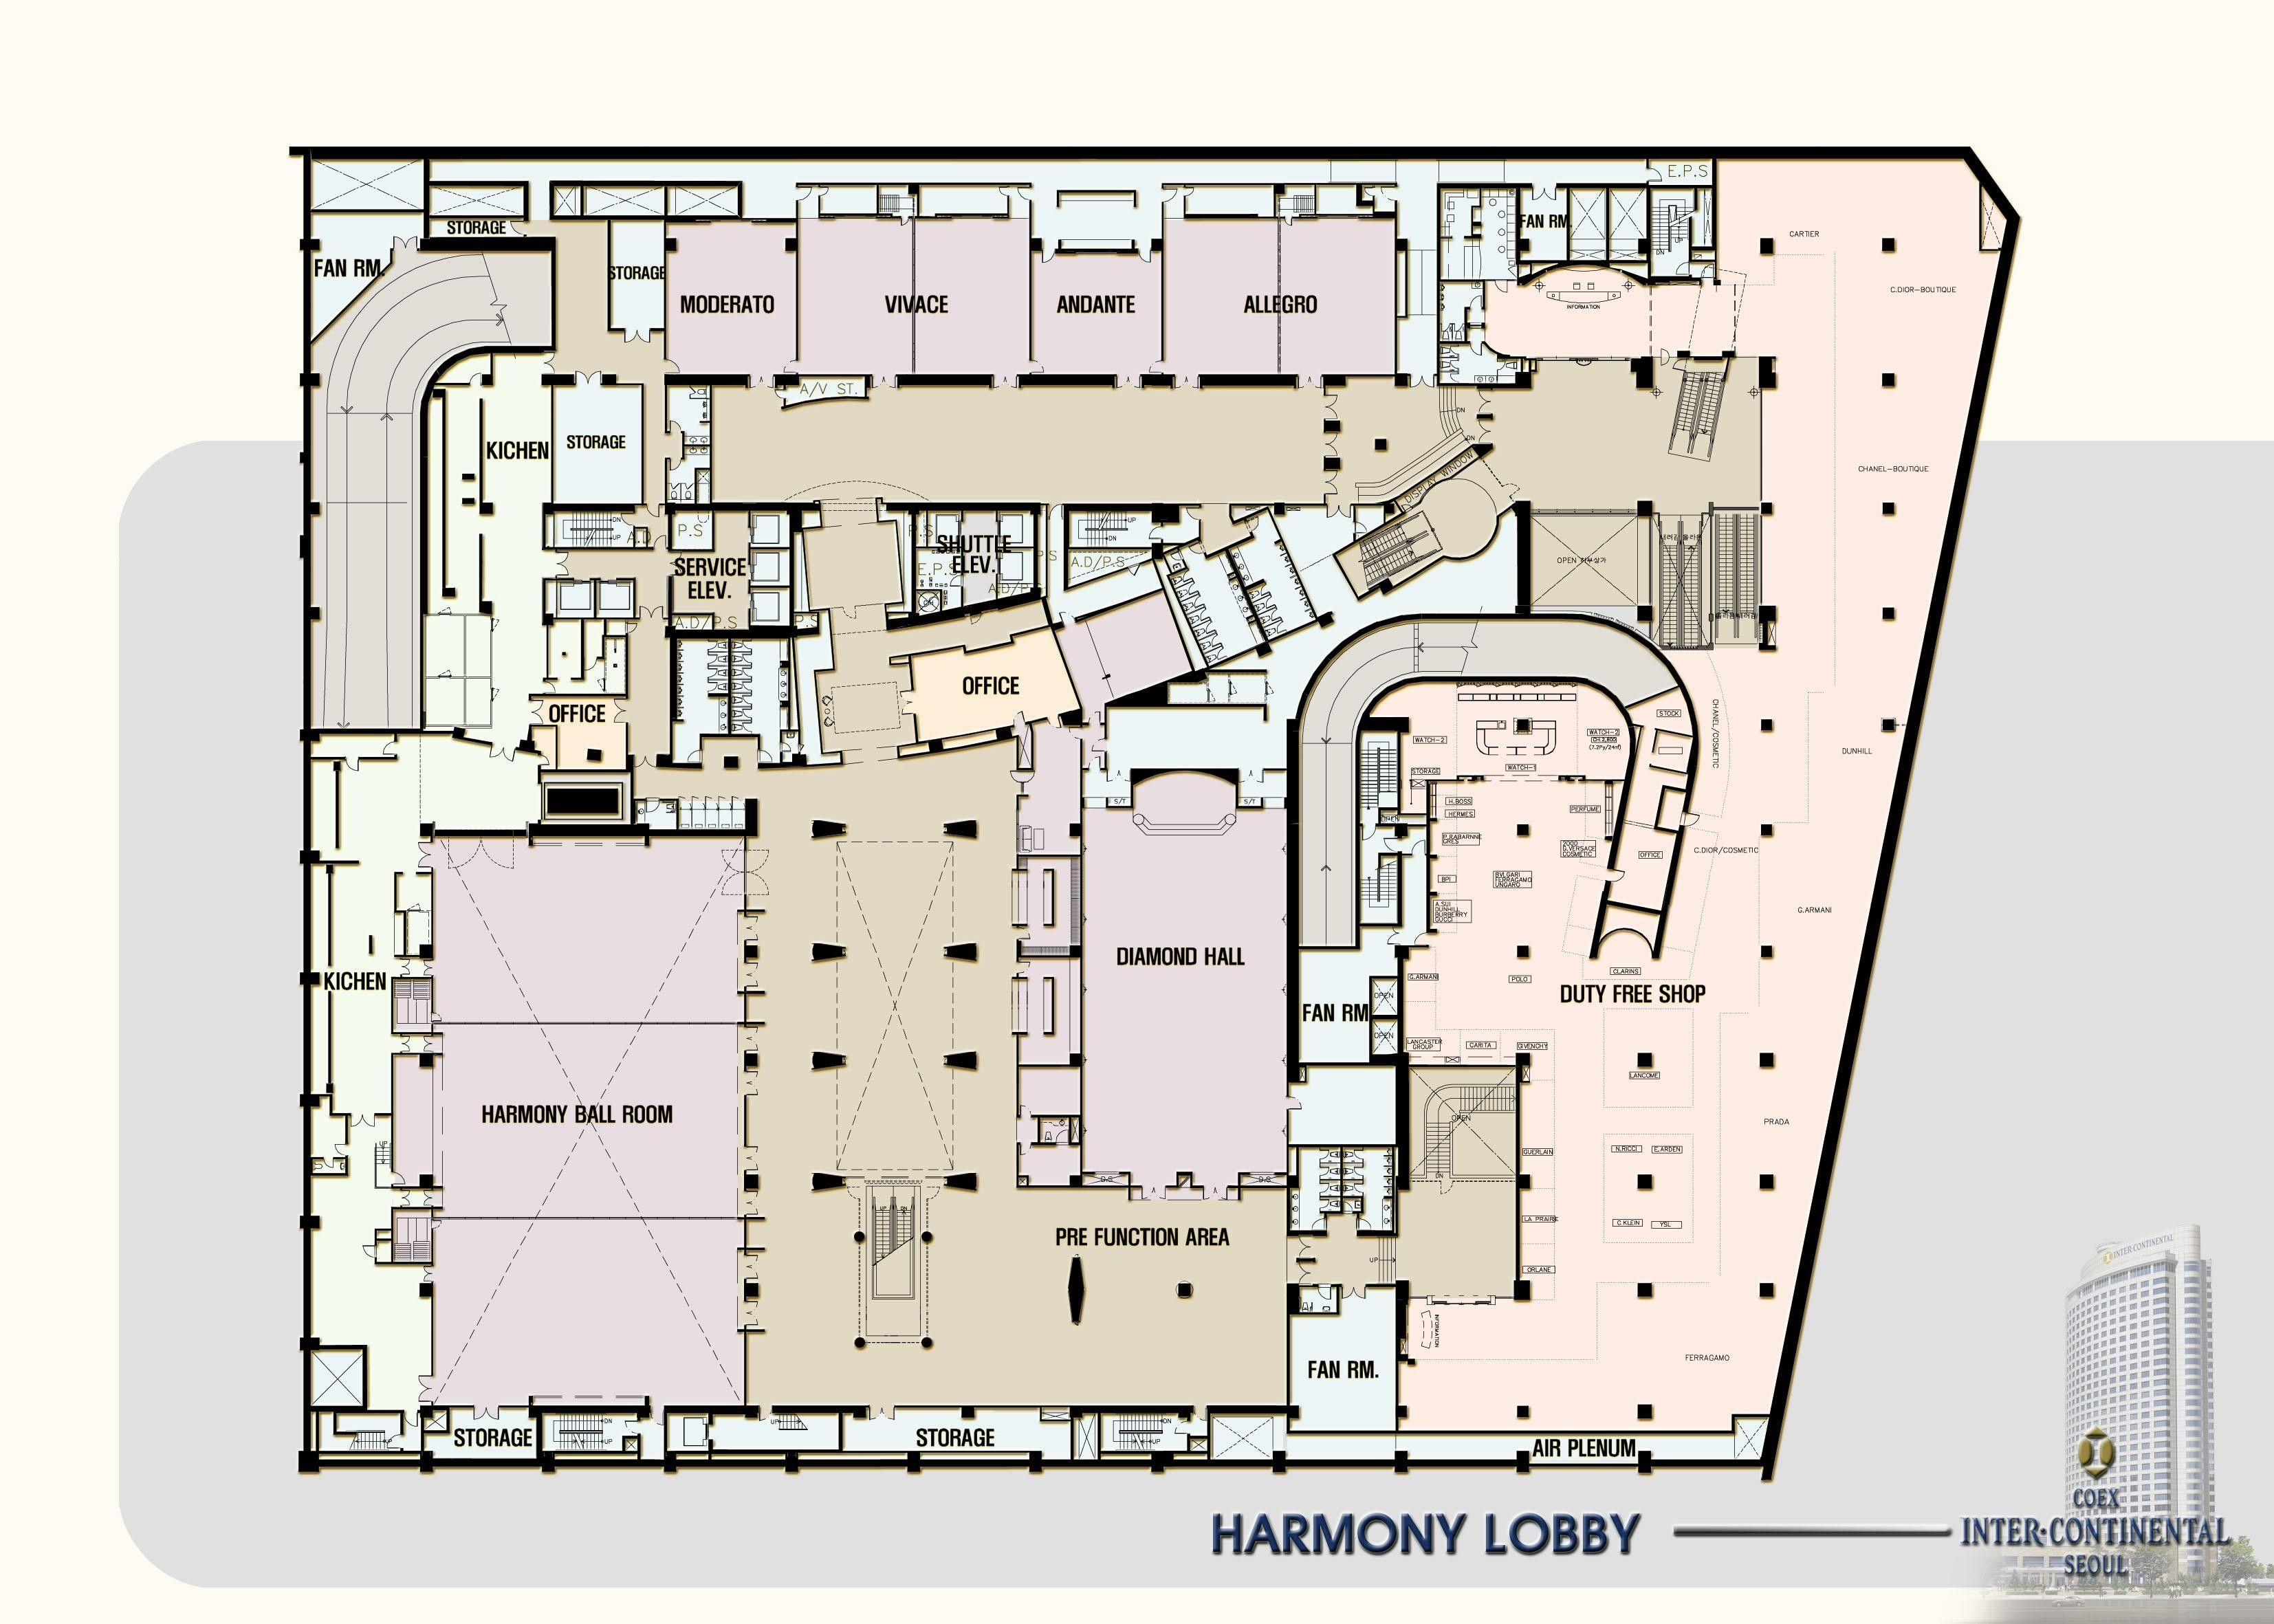 hotel lobby floor plan - Google Search | Hotel Design Program ...